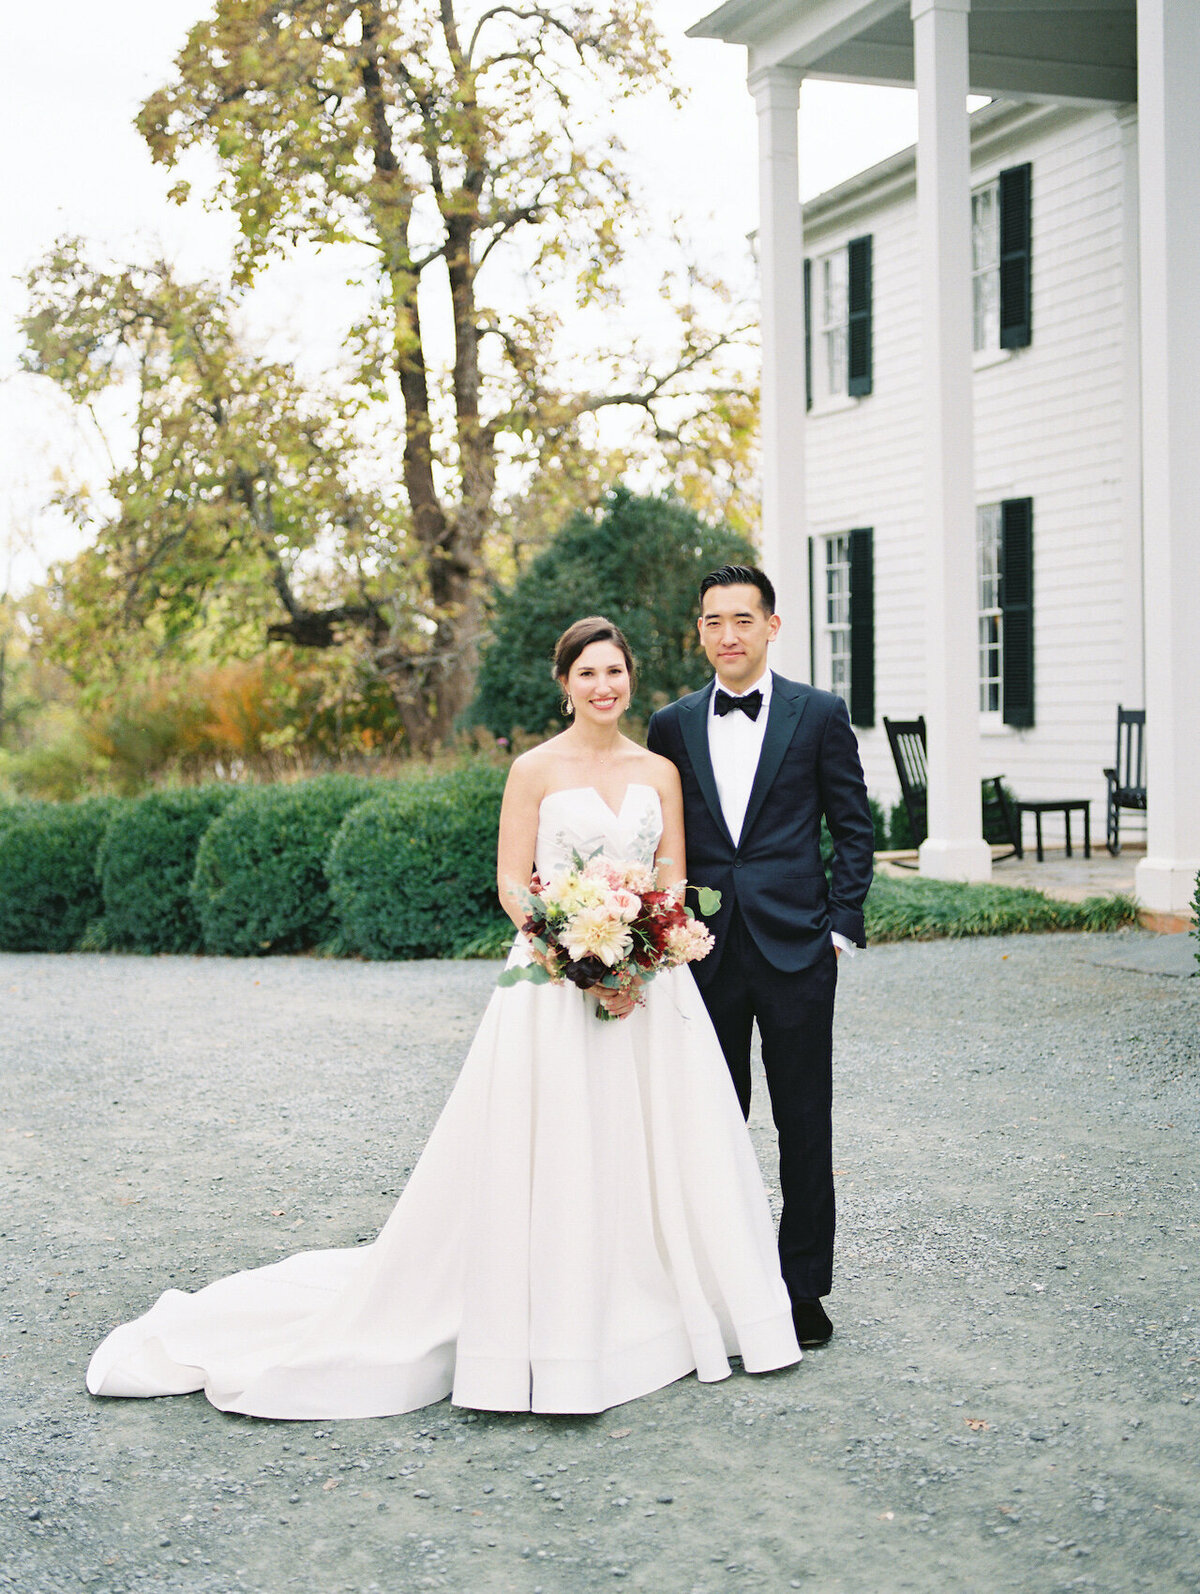 Virginia Wedding Photographer Robert Aveau for © Bonnie Sen Photography